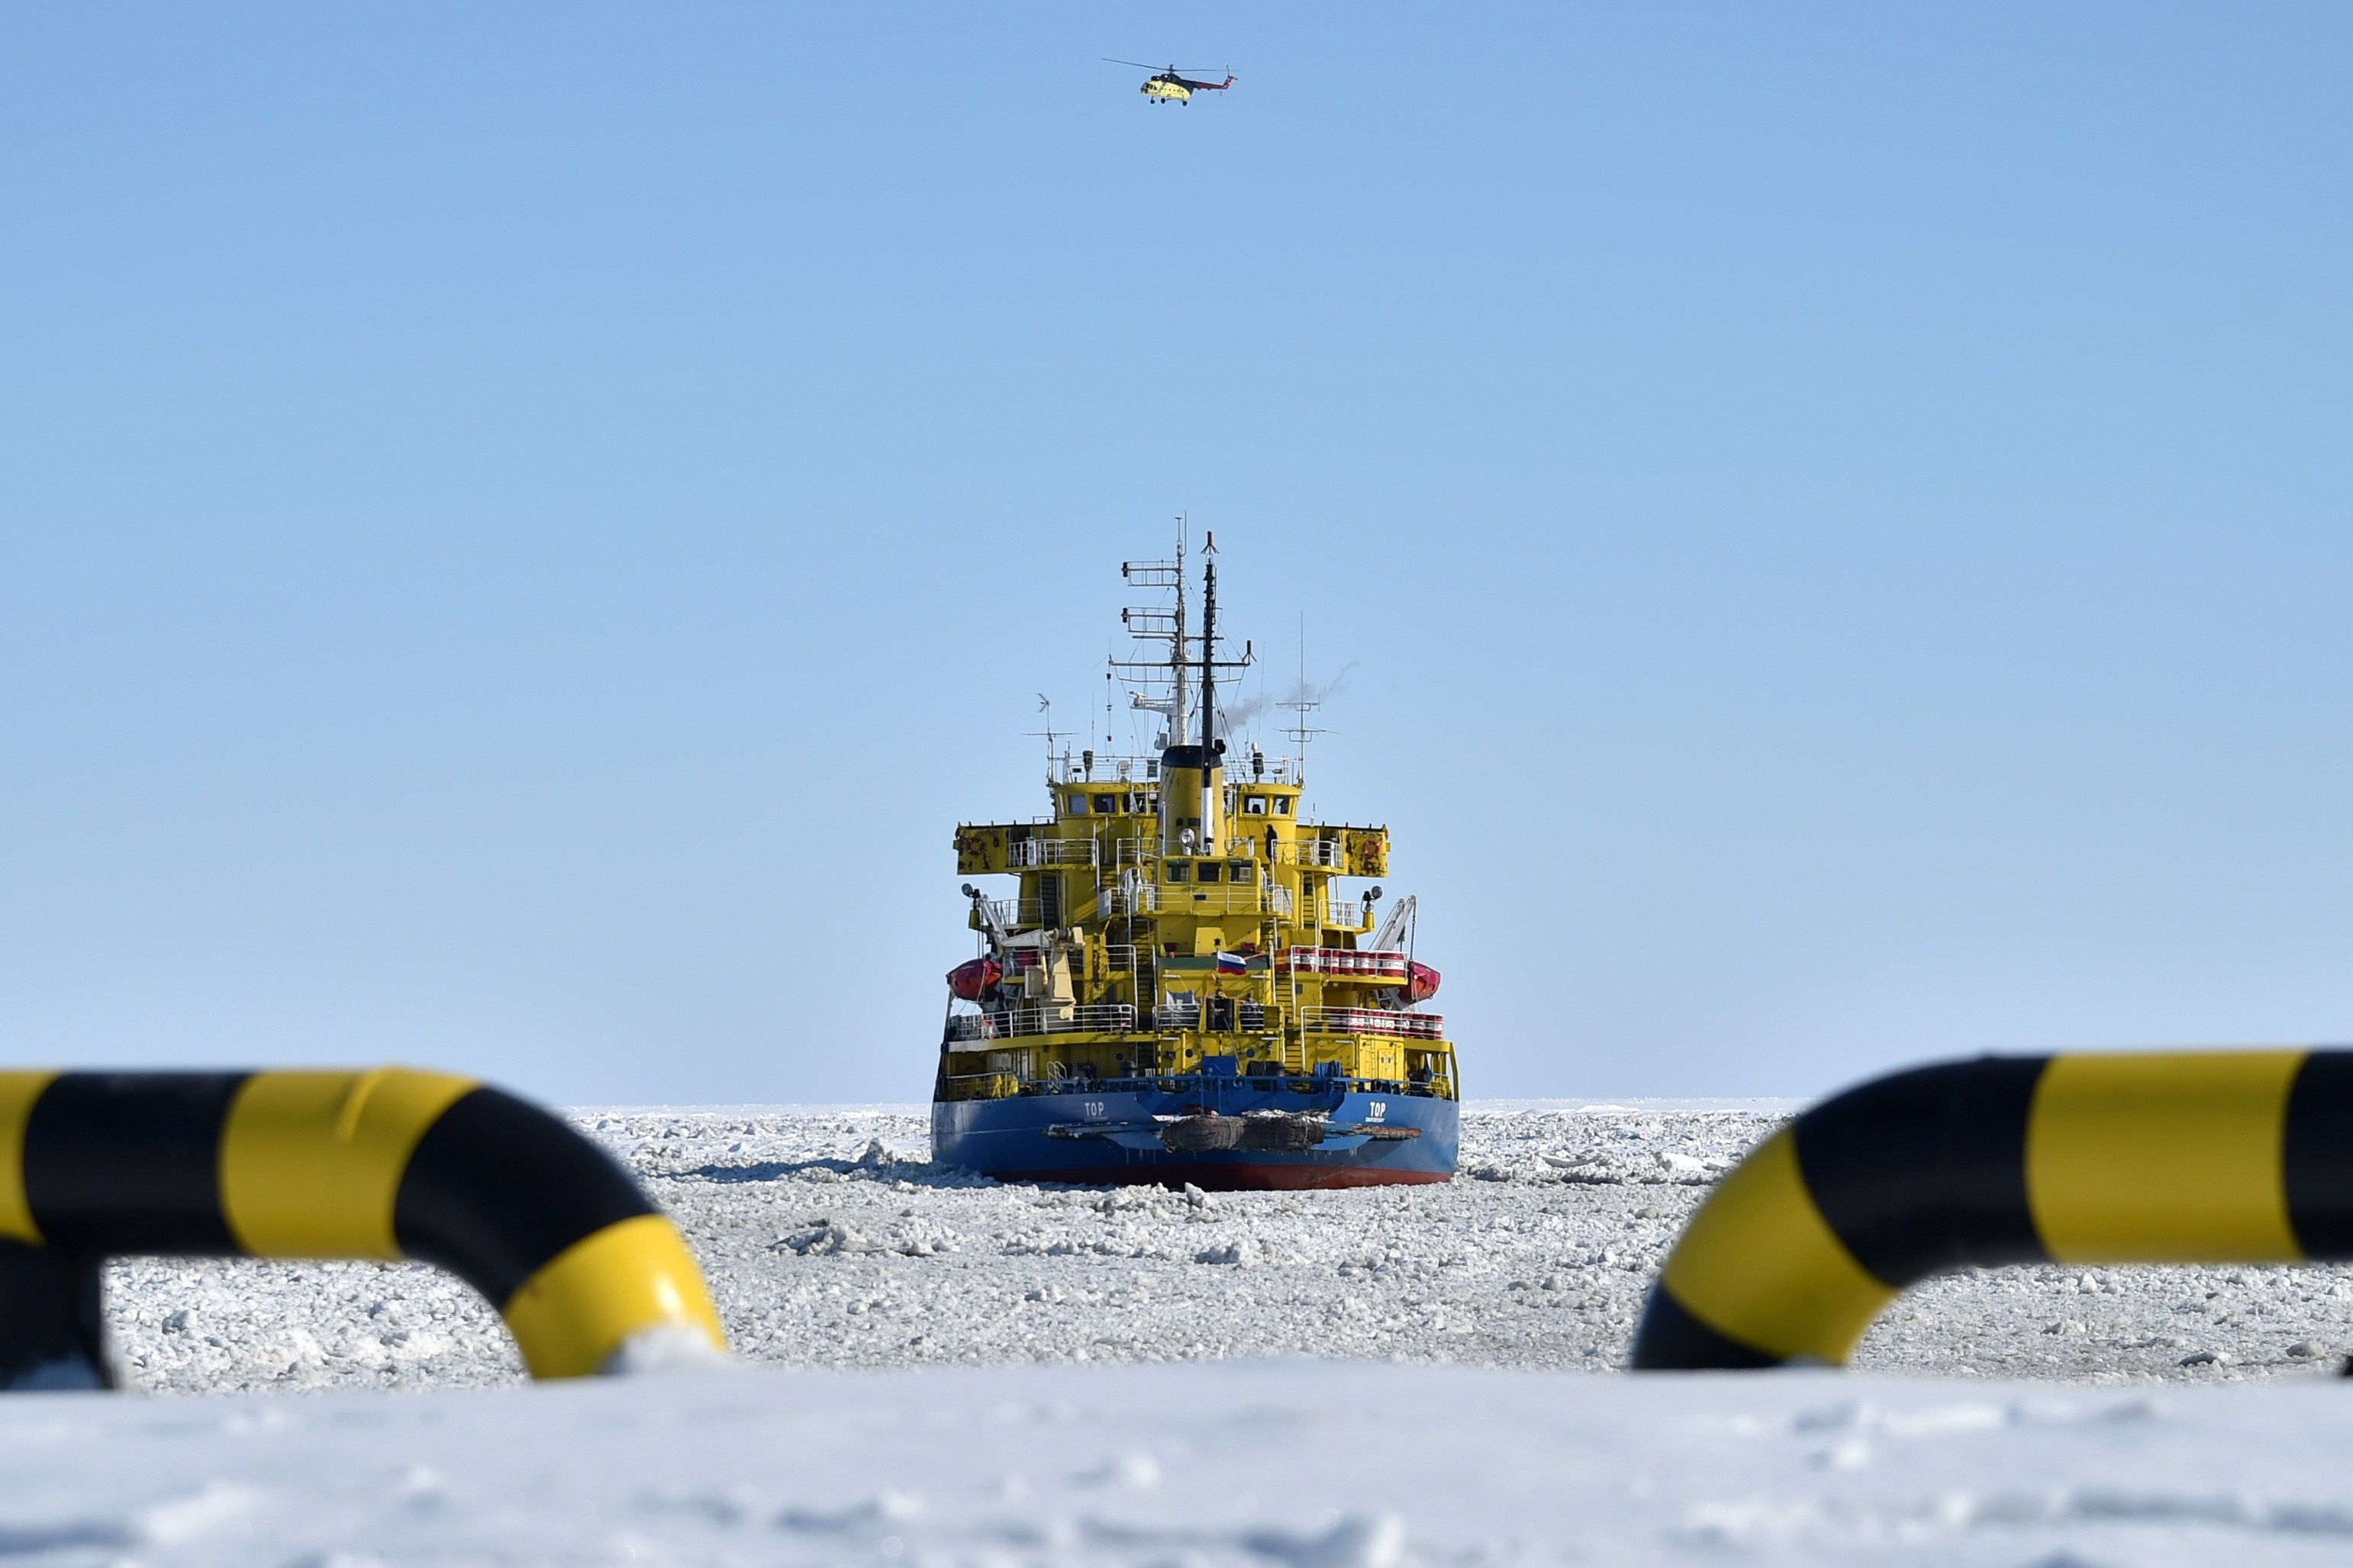 The icebreaker Tor at the port of Sabetta, in the Arctic circle, on April 16, 2015.